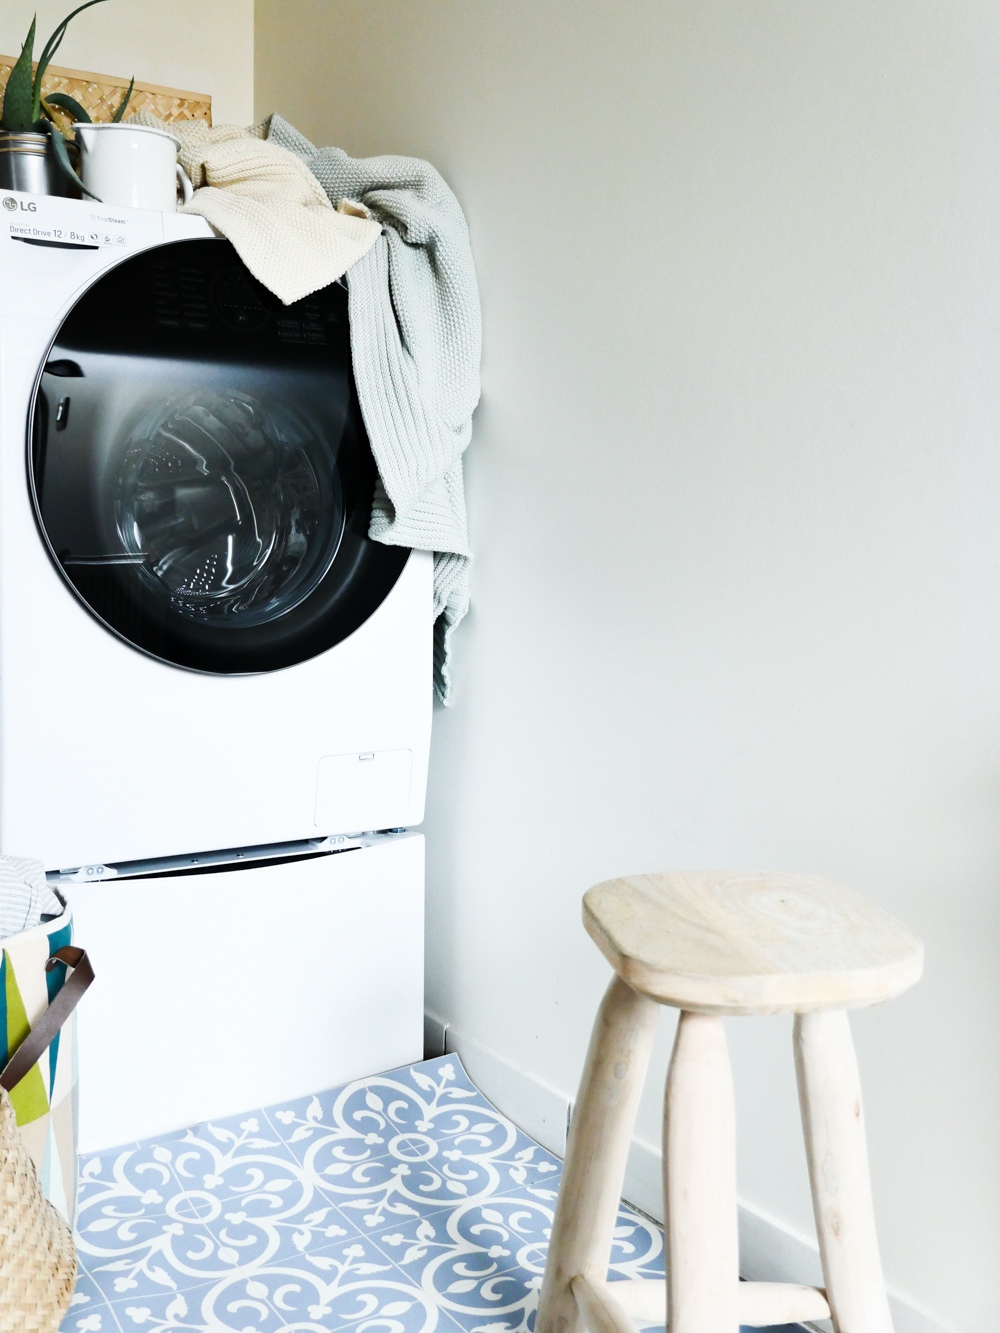 lave-linge séchant LG TWINWash™ blog deco lifestyle voyage lili in wonderland